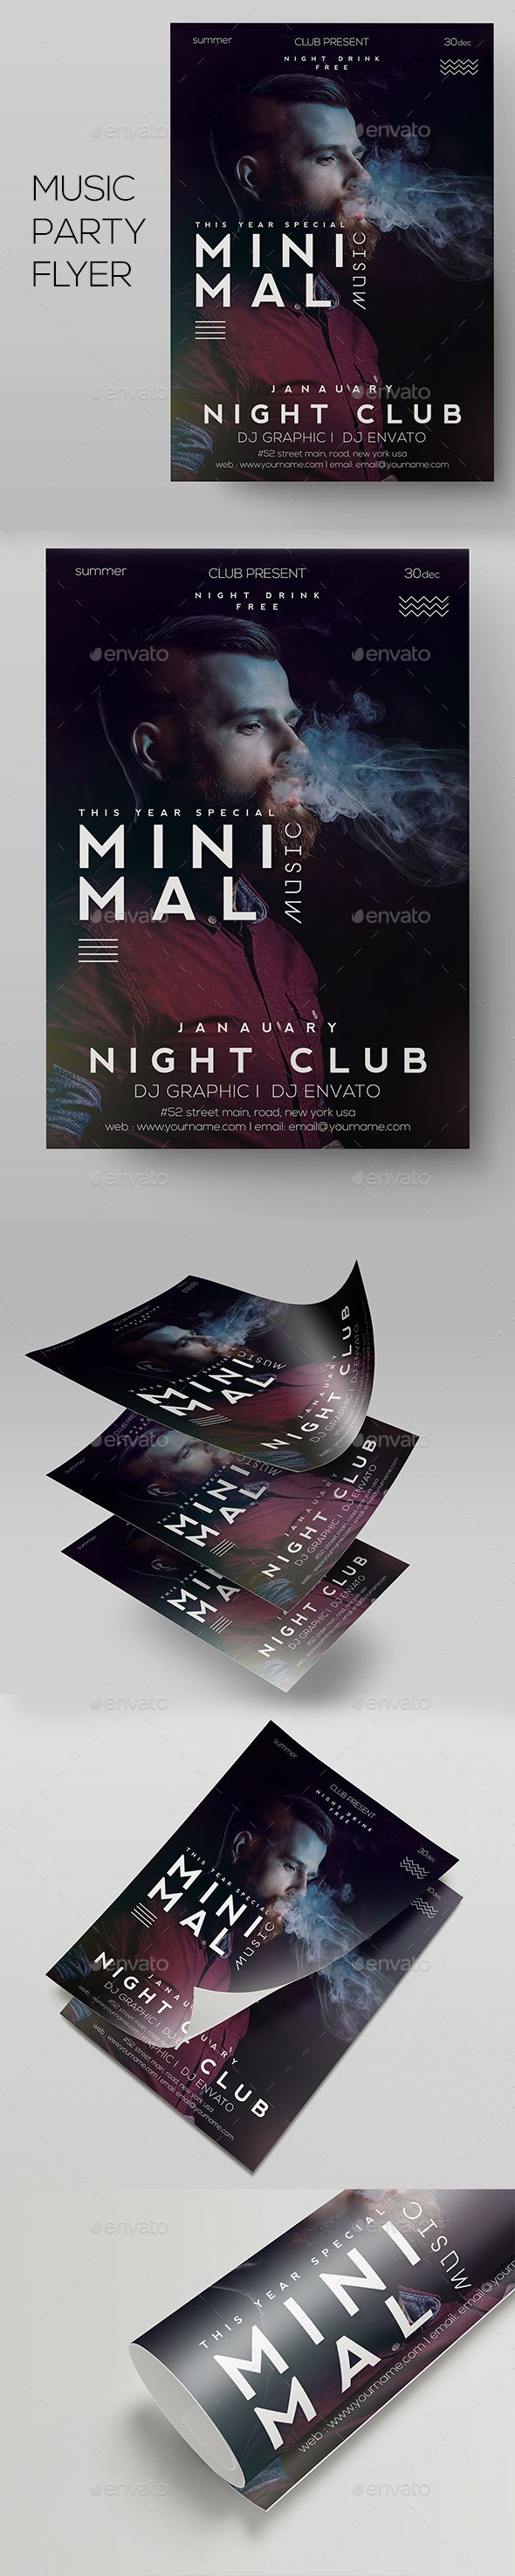 Deep Club #Party | Minimal #Flyer Template - Clubs & Parties #Events